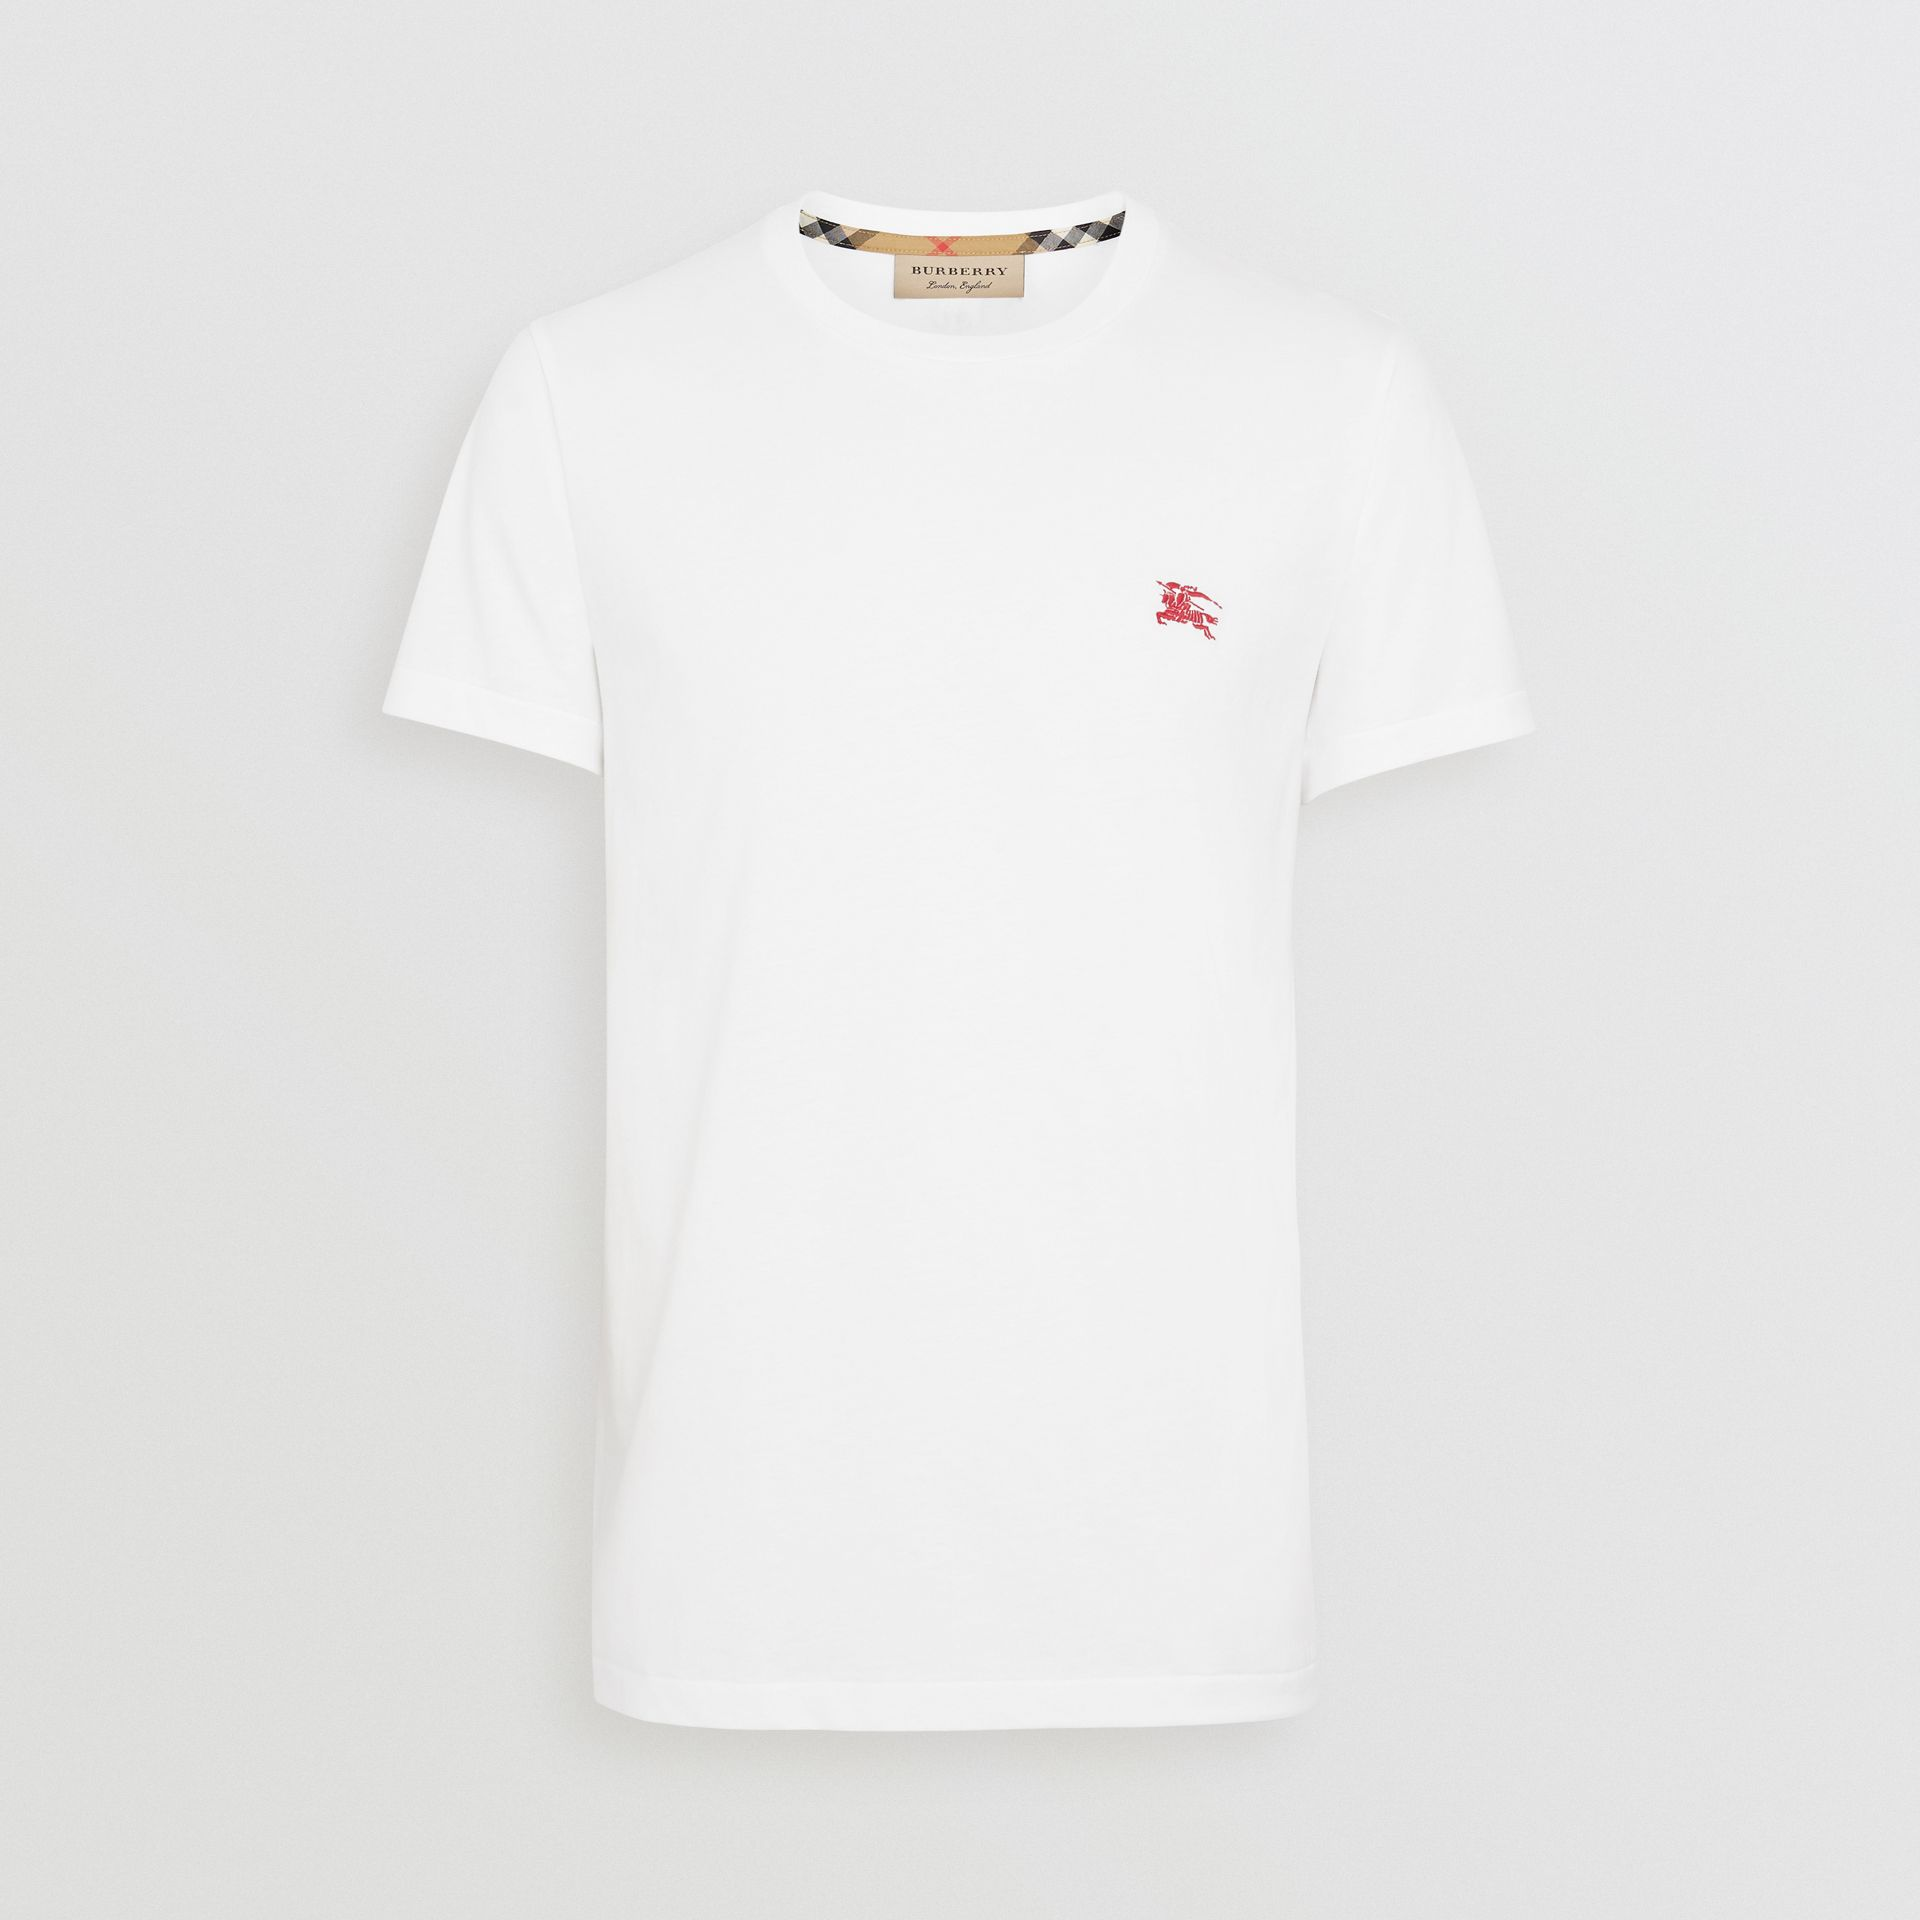 Cotton Jersey T-shirt in White - Men | Burberry United States - gallery image 3